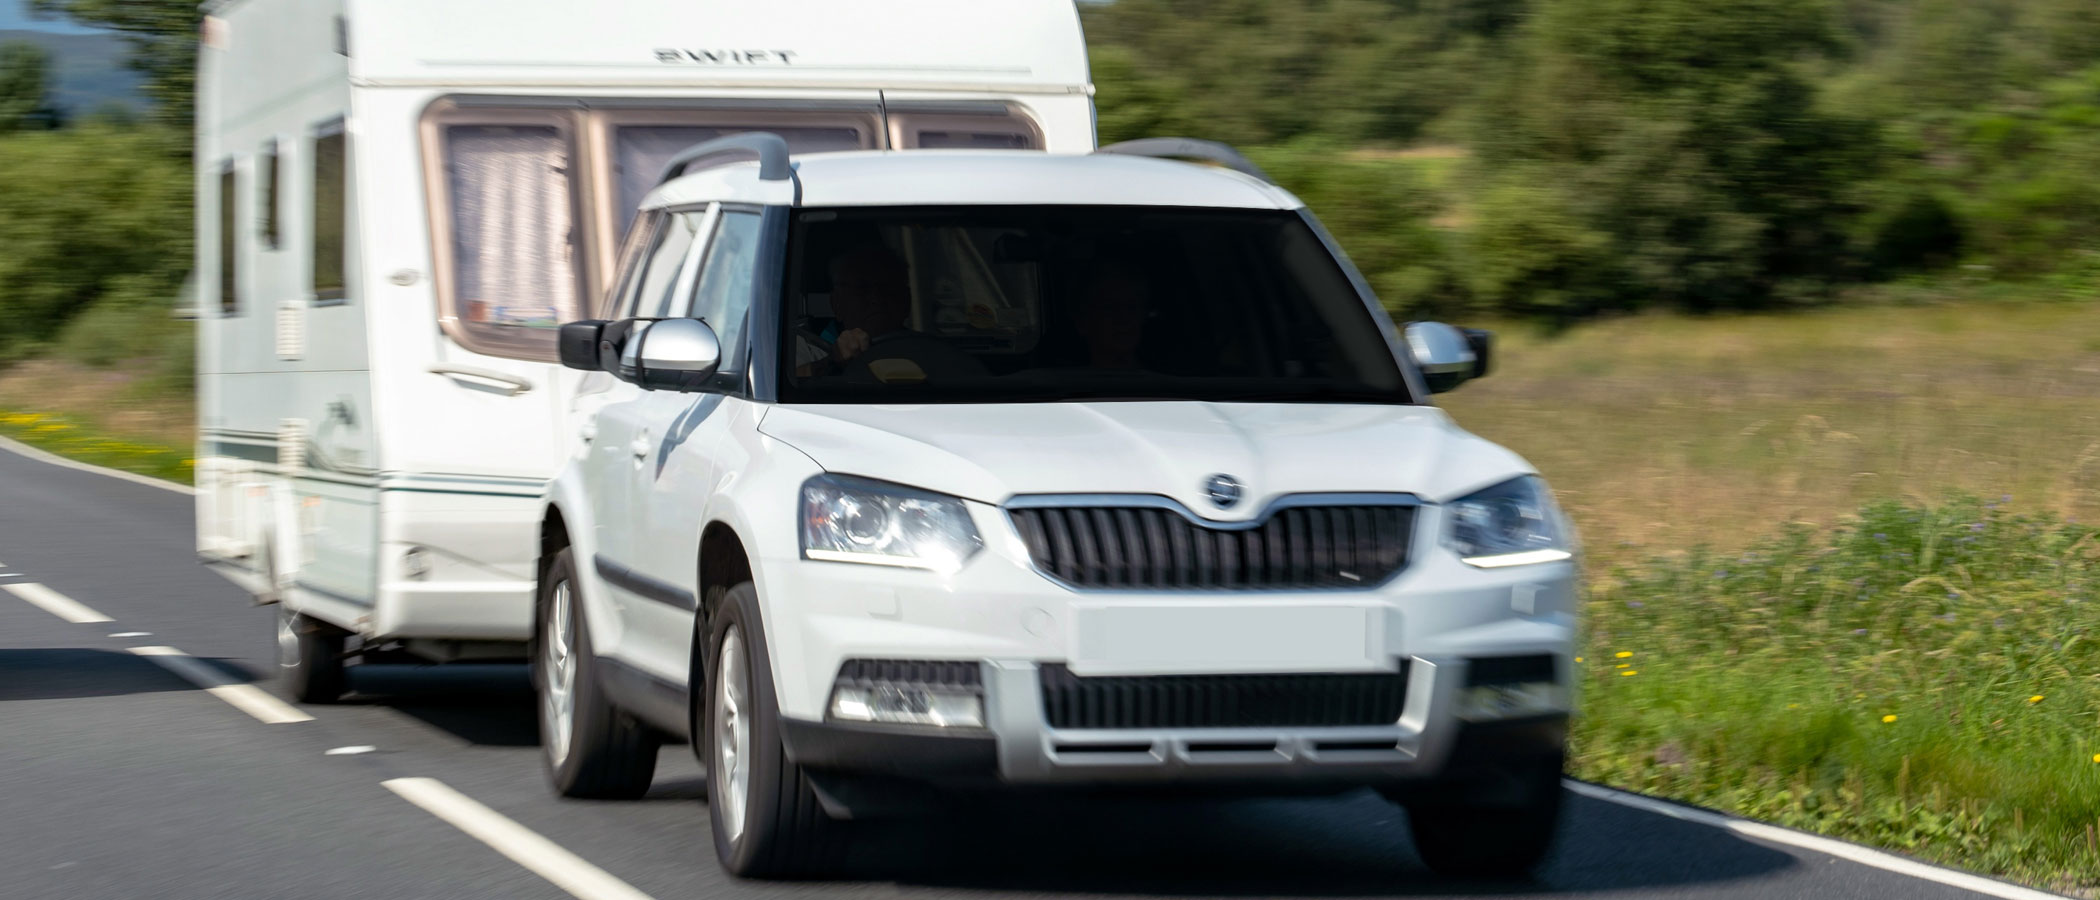 Towing A Caravan - Remapping for more power